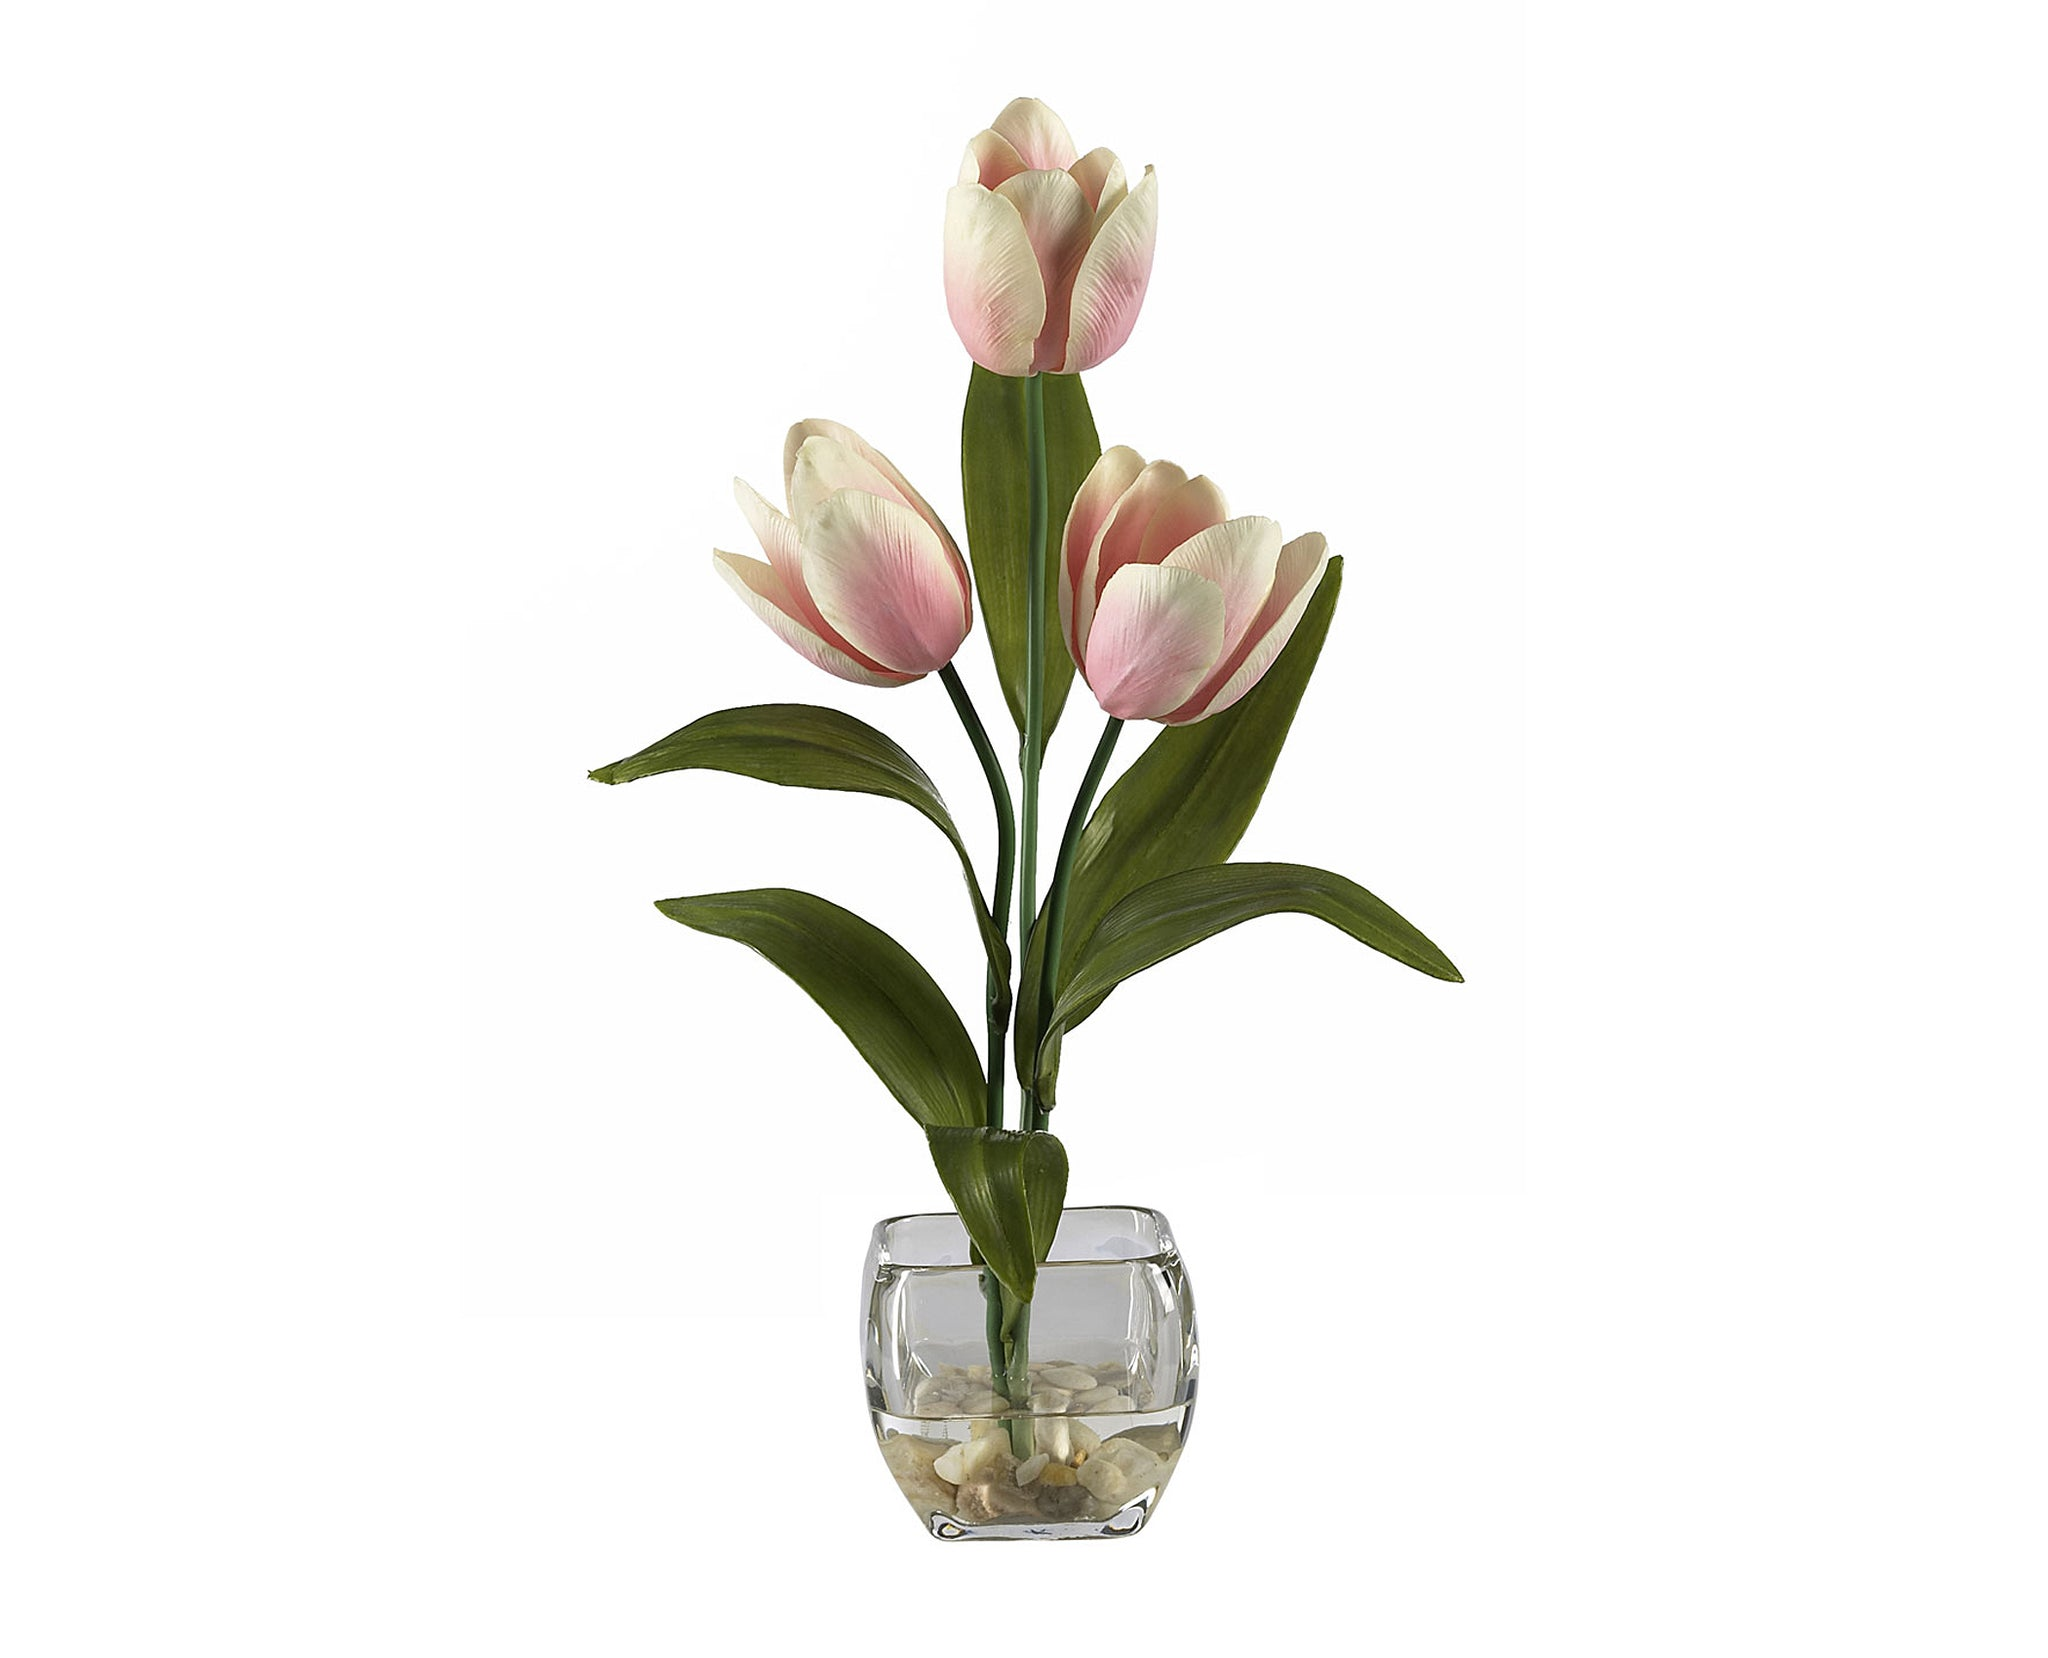 Tulips Cream Pink Flowers